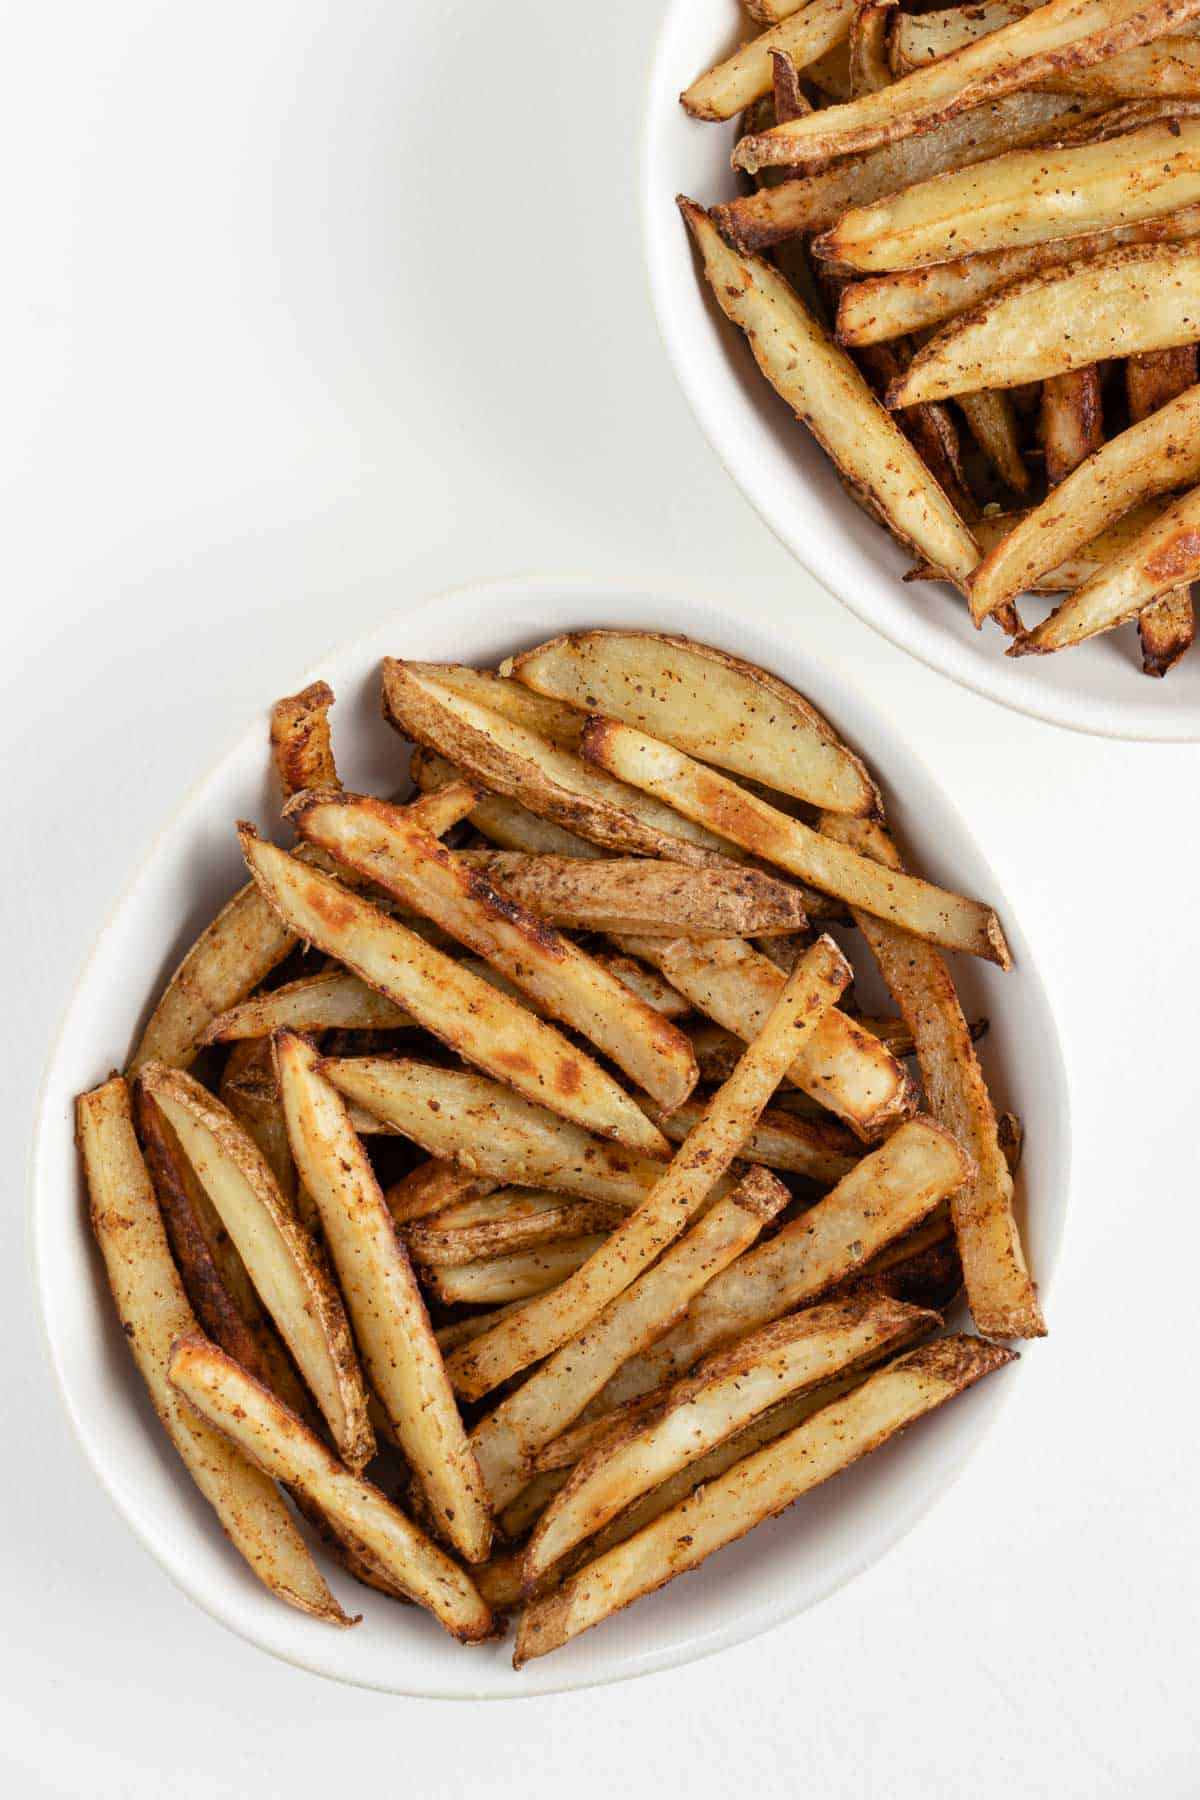 two white bowls filled with crispy baked french fries